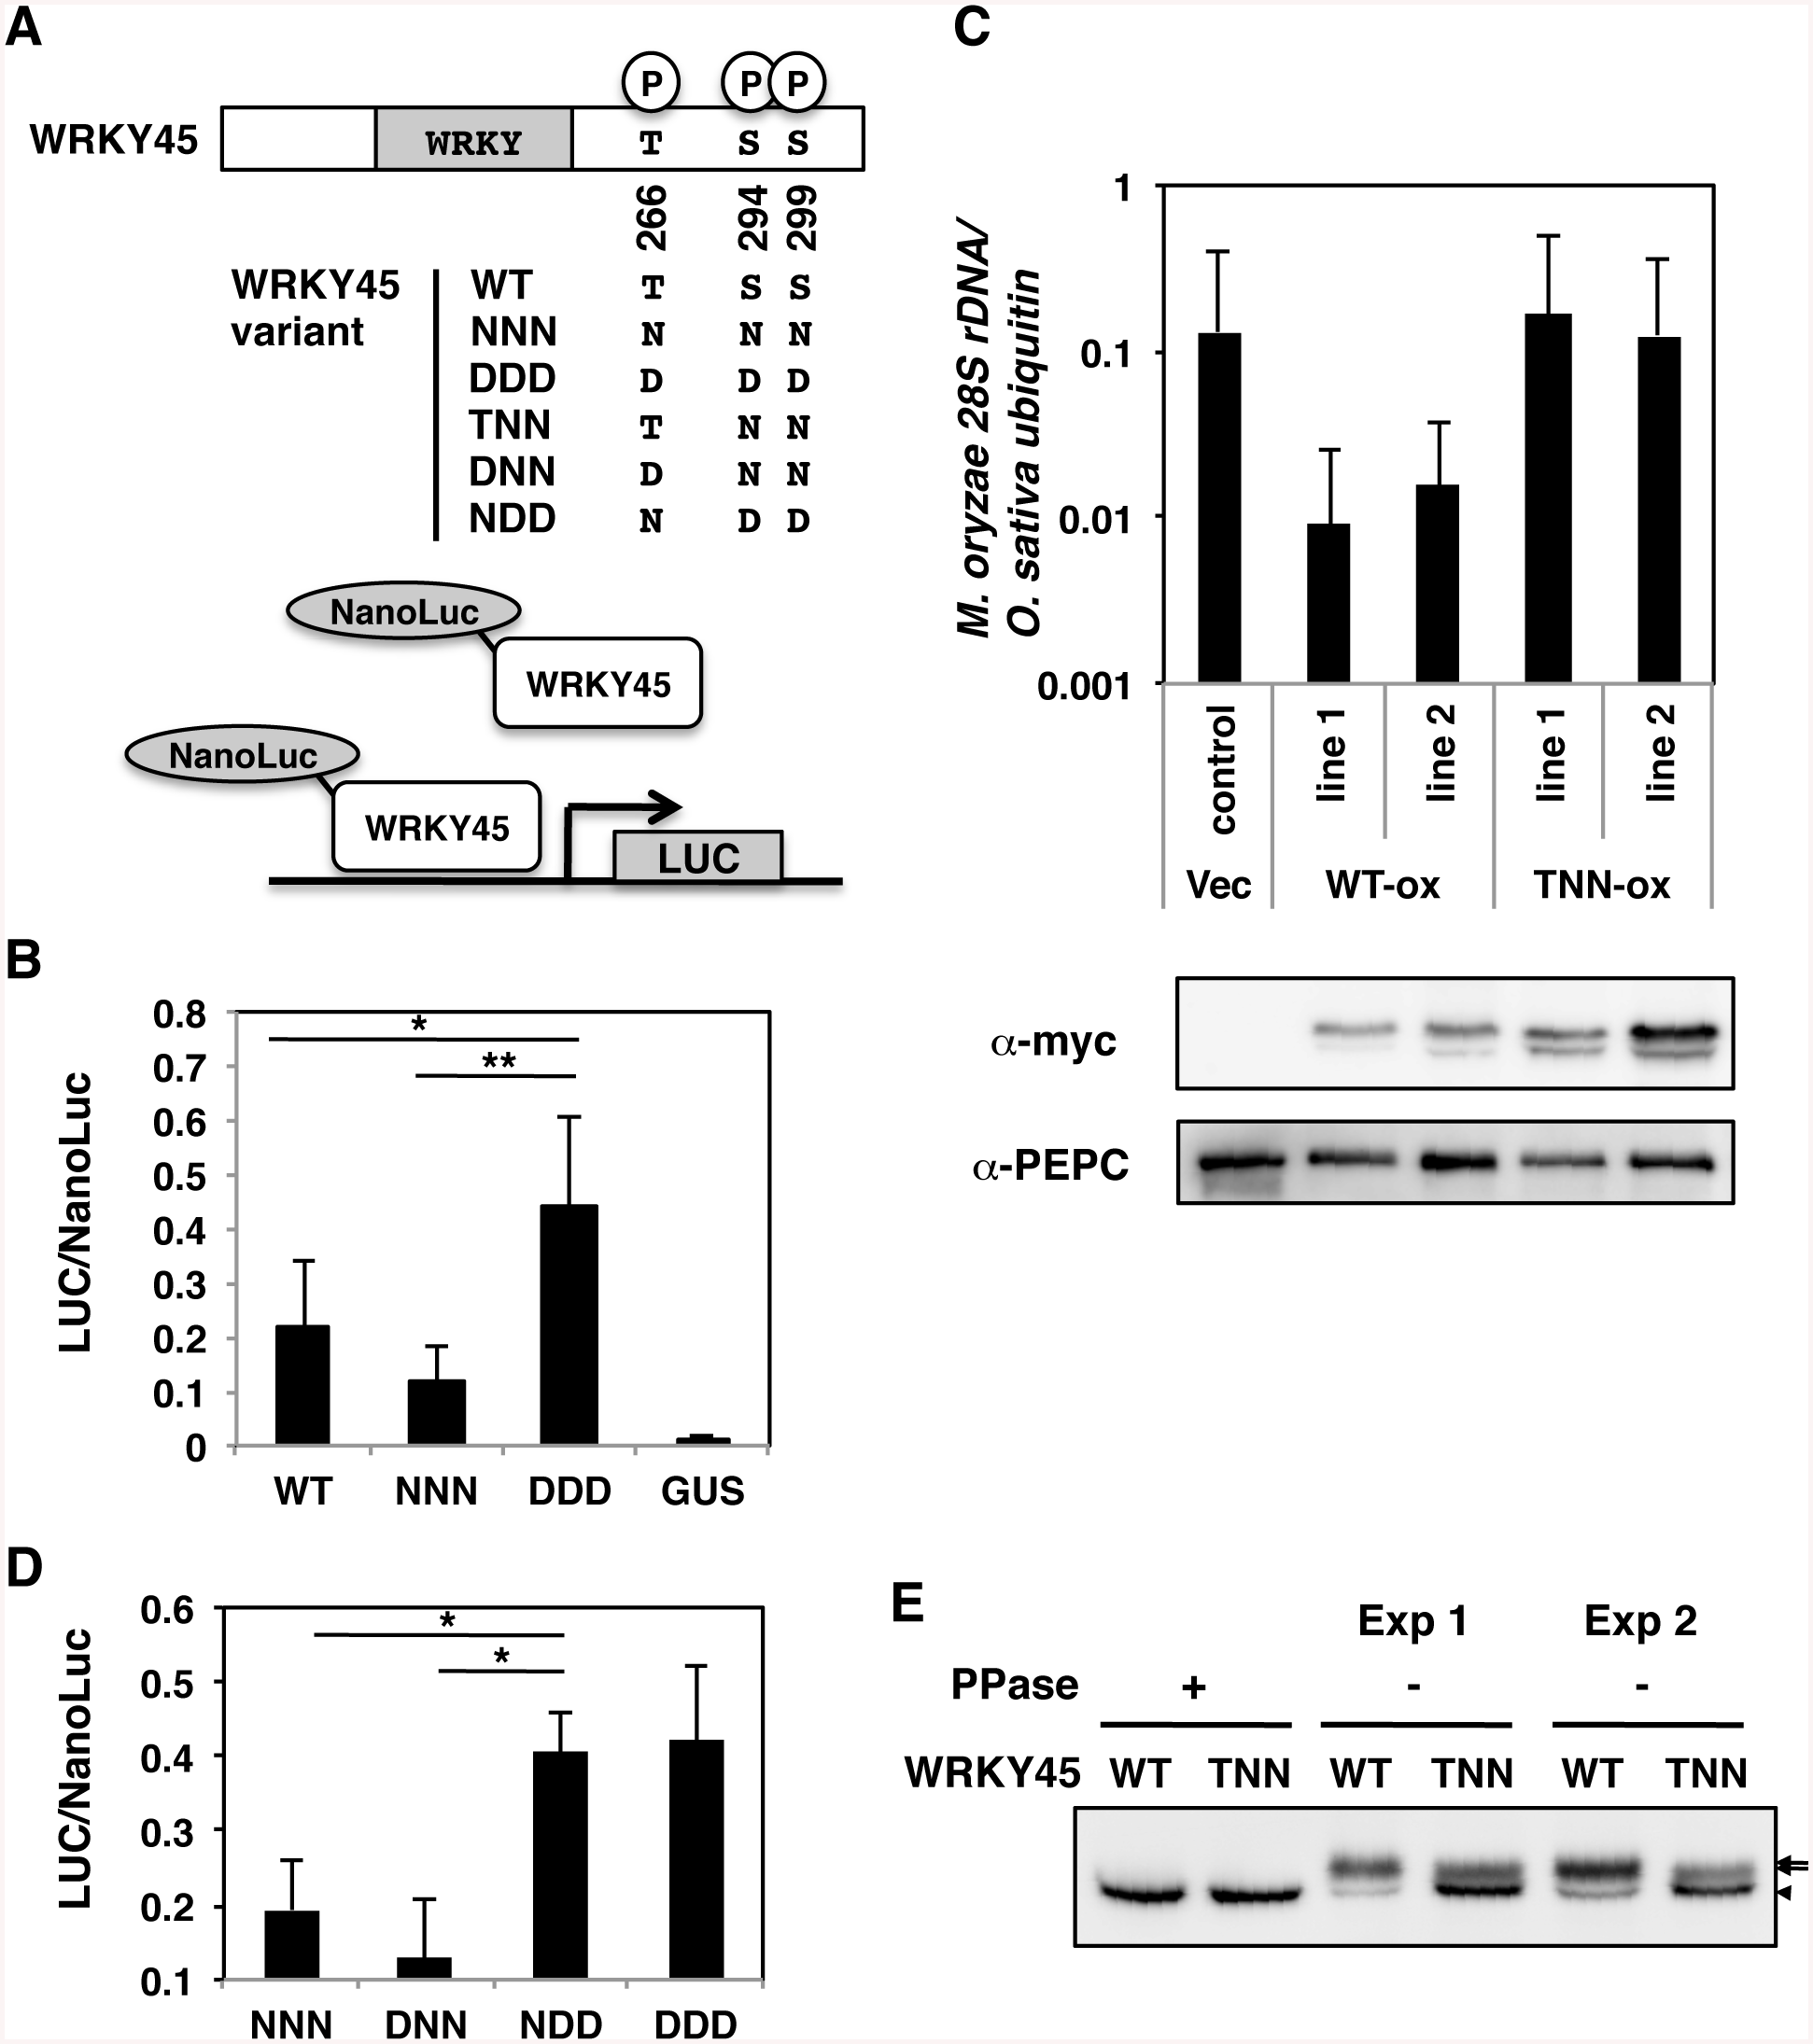 Phosphorylation at carboxyl-terminal serines activates WRKY45 in rice.